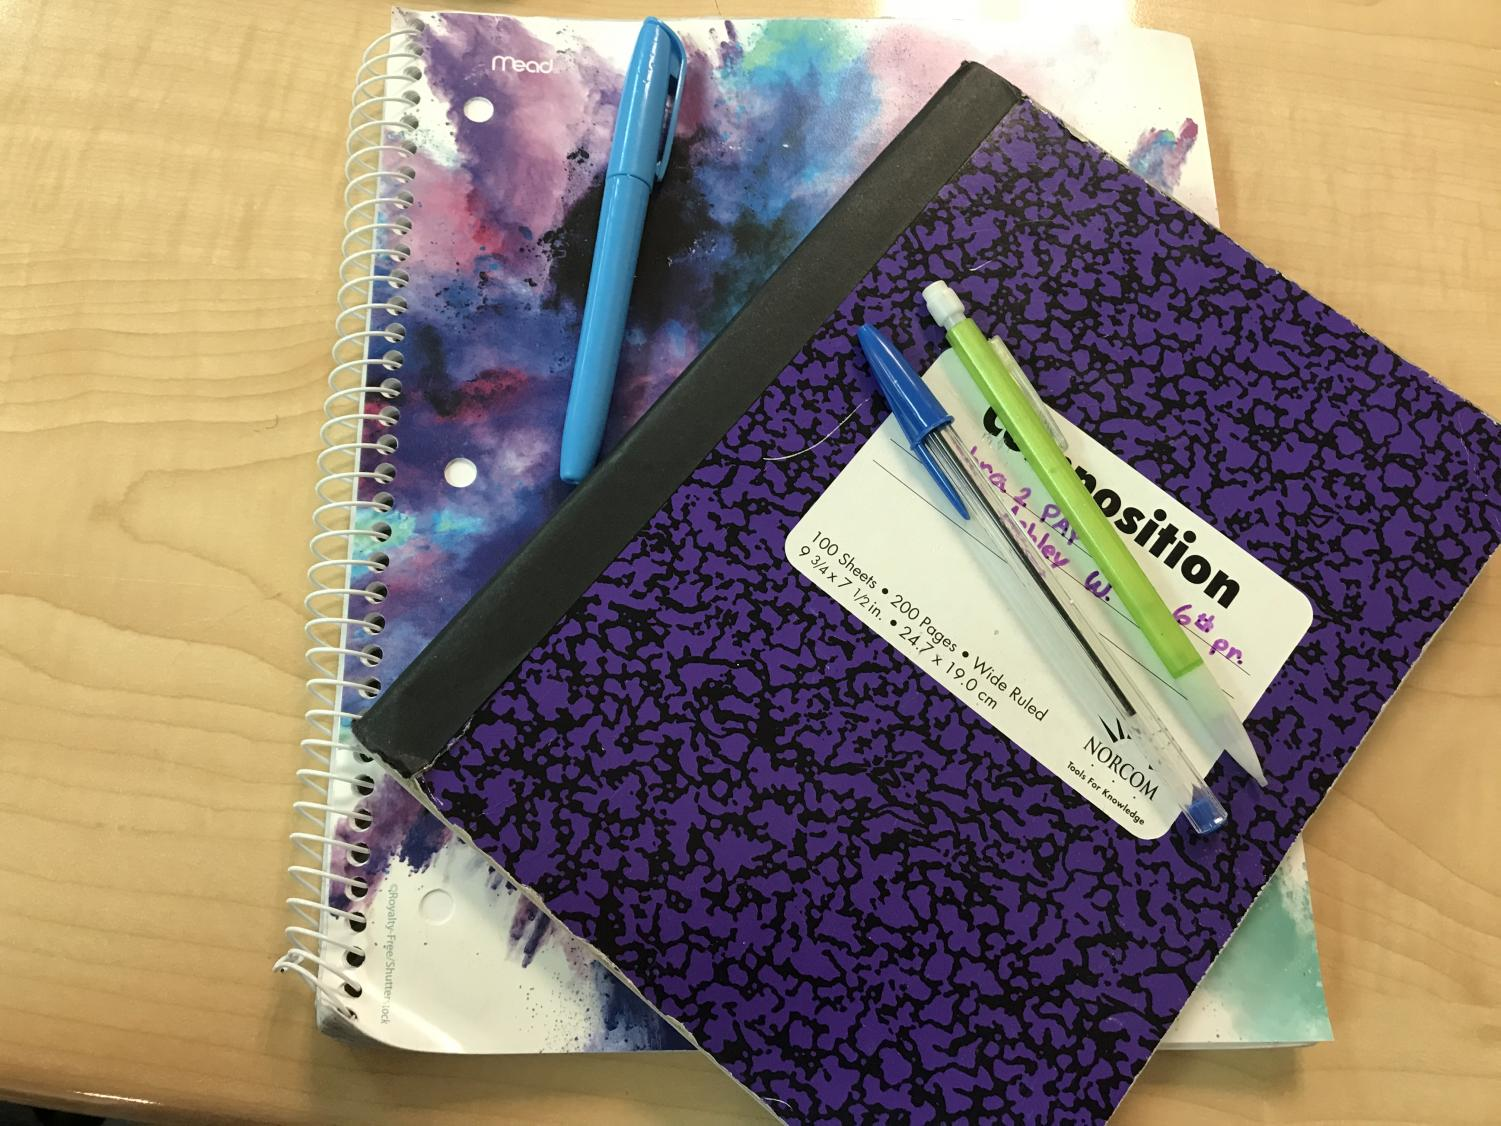 Supplies needed to study include notebooks, pencils, pens, and a highlighter.